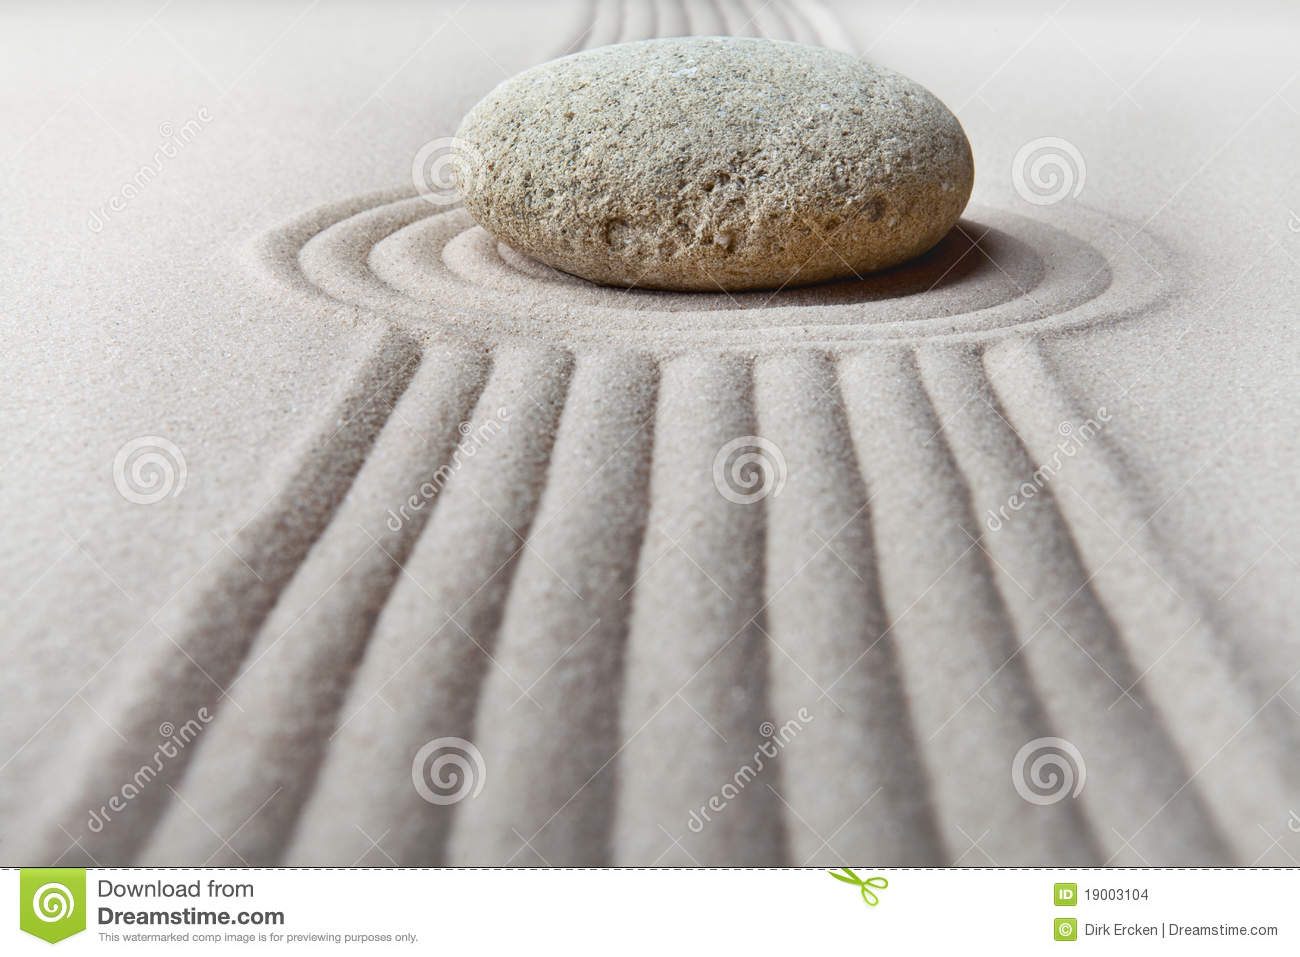 zen garden sand patterns images galleries with a bite. Black Bedroom Furniture Sets. Home Design Ideas